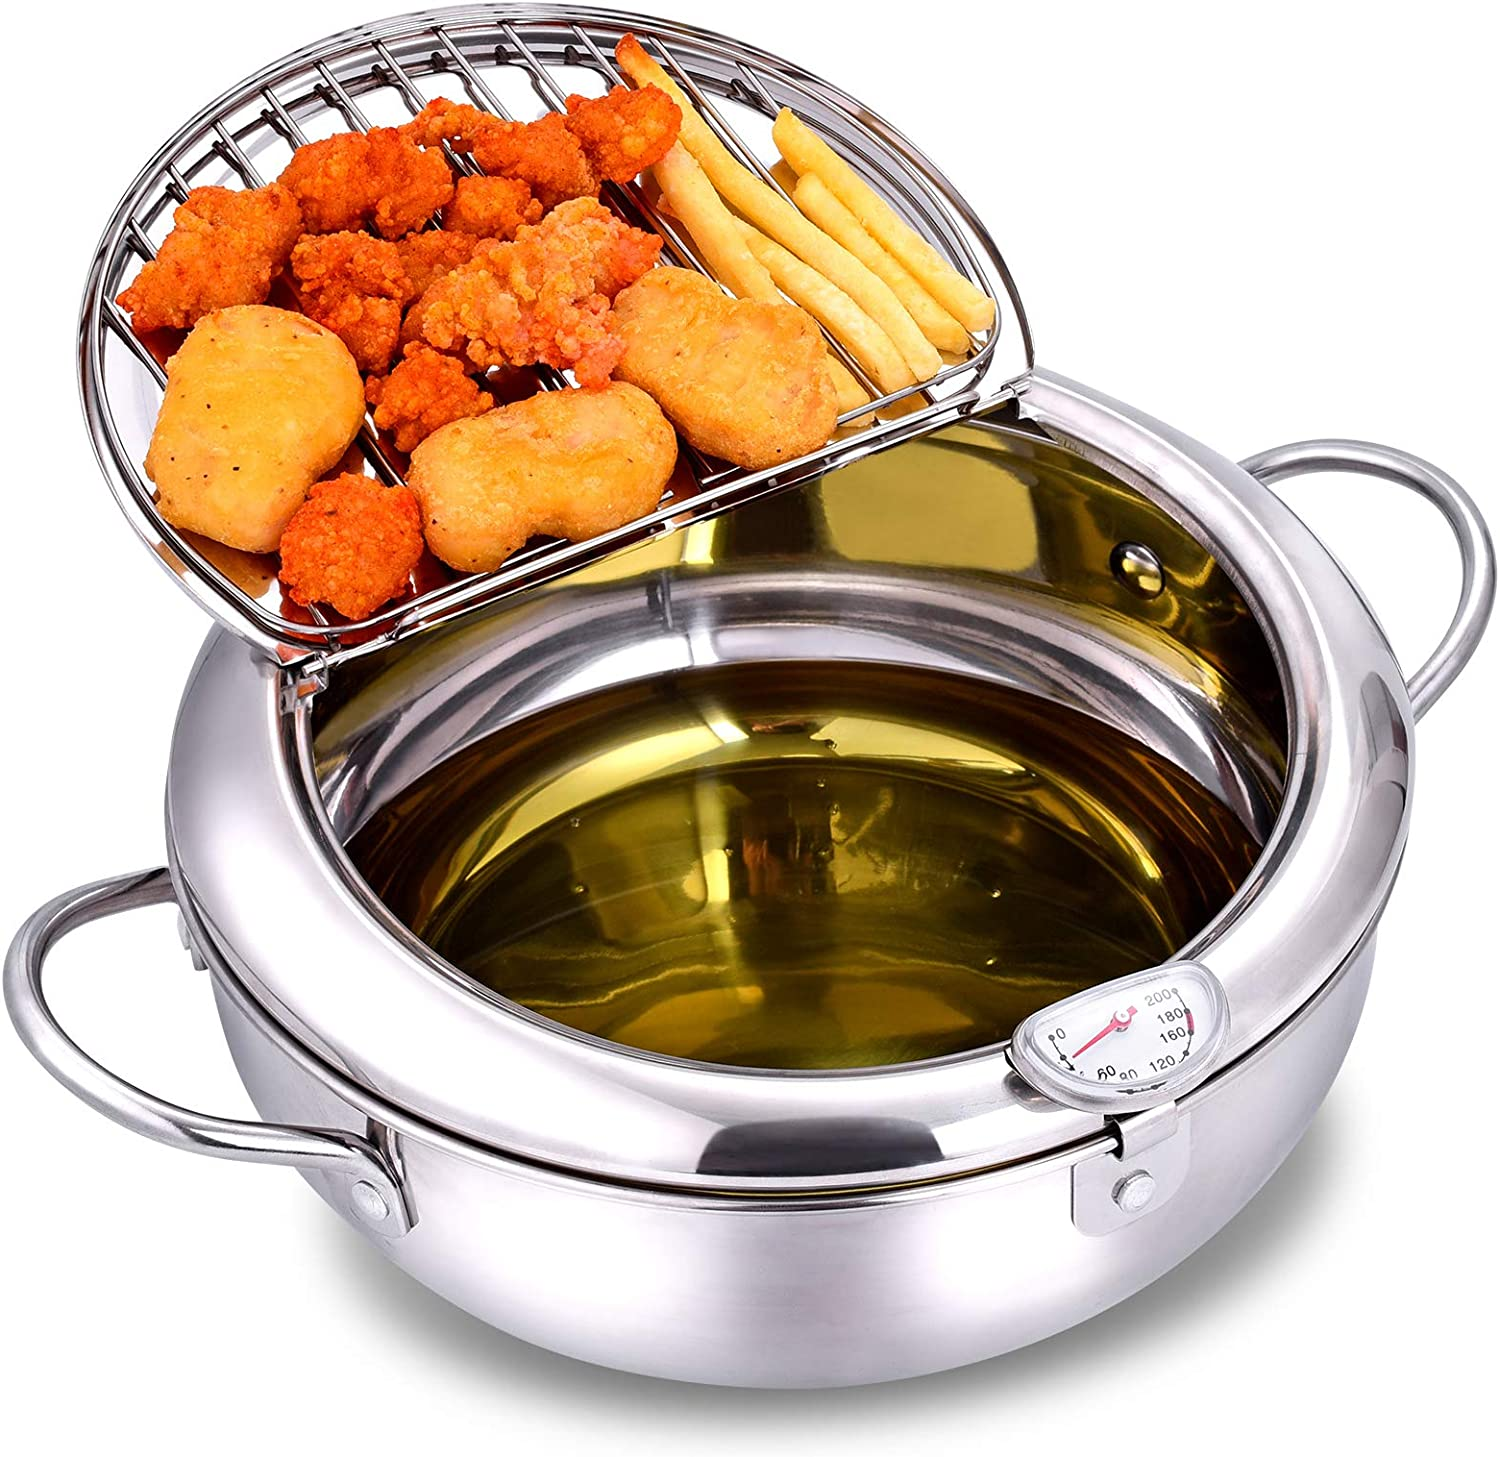 Deep Fryer Pot,304 Stainless Steel with Temperature Control and Lid Japanese Style Tempura Fryer Pan Uncoated Fryer Diameter: 9.4